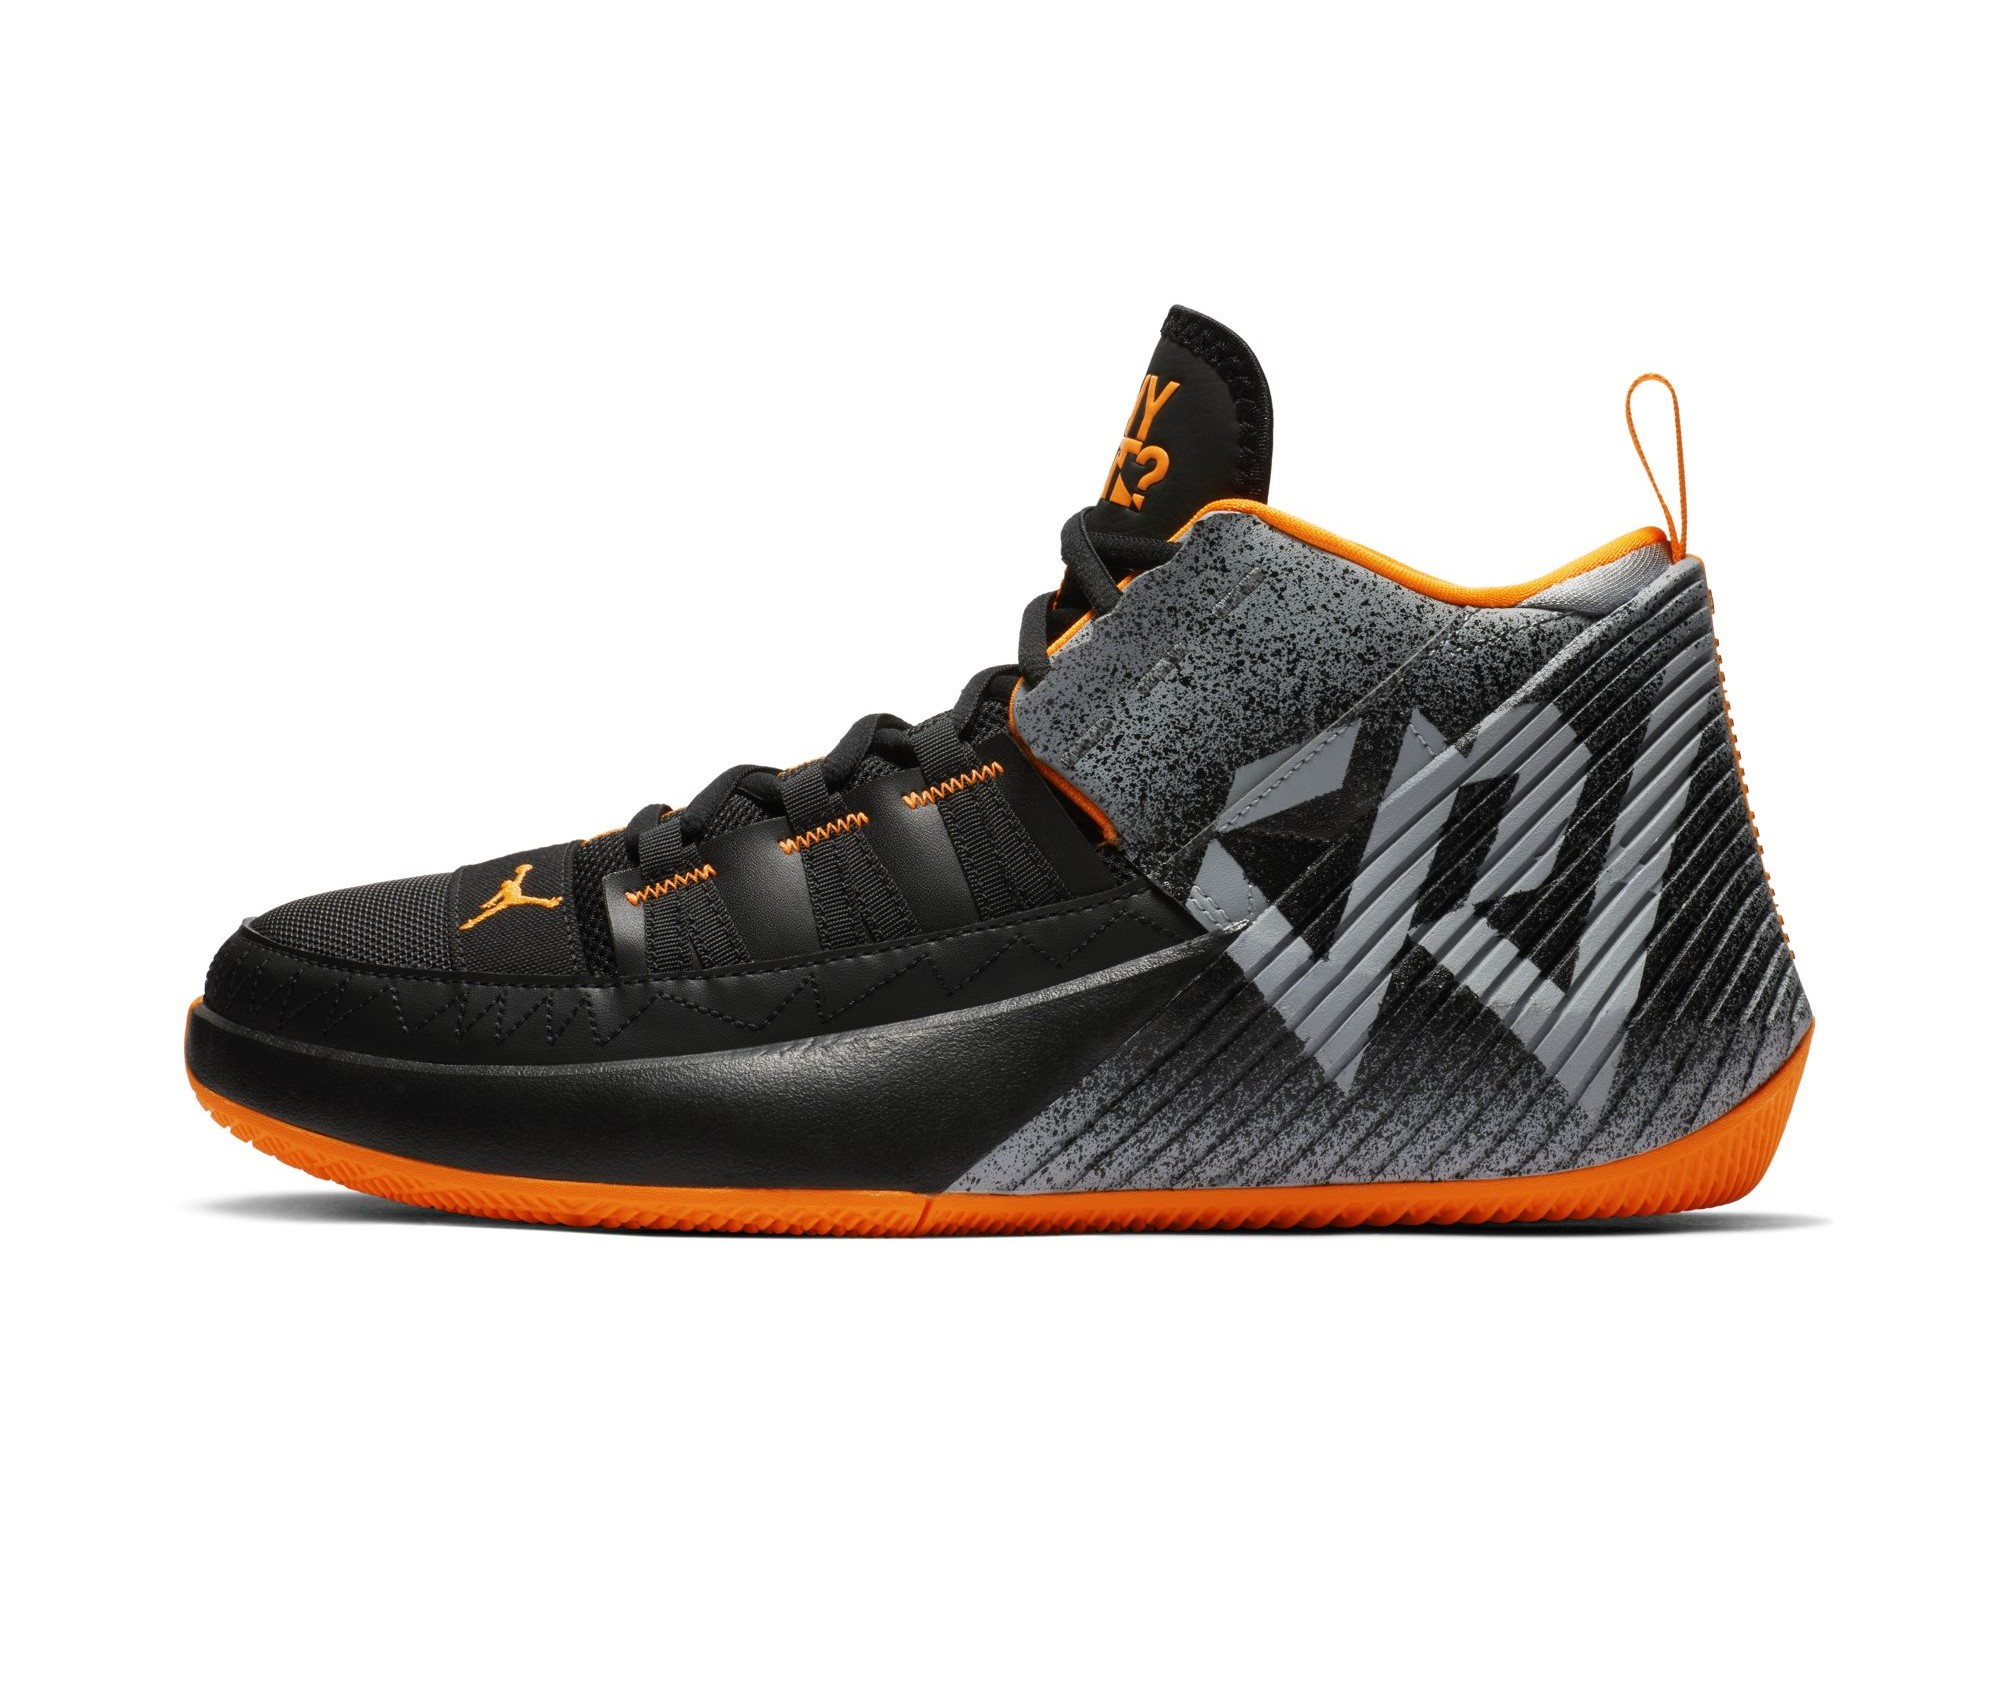 3f7bc58da russell westbrook why not zer0.1 chaos - WearTesters